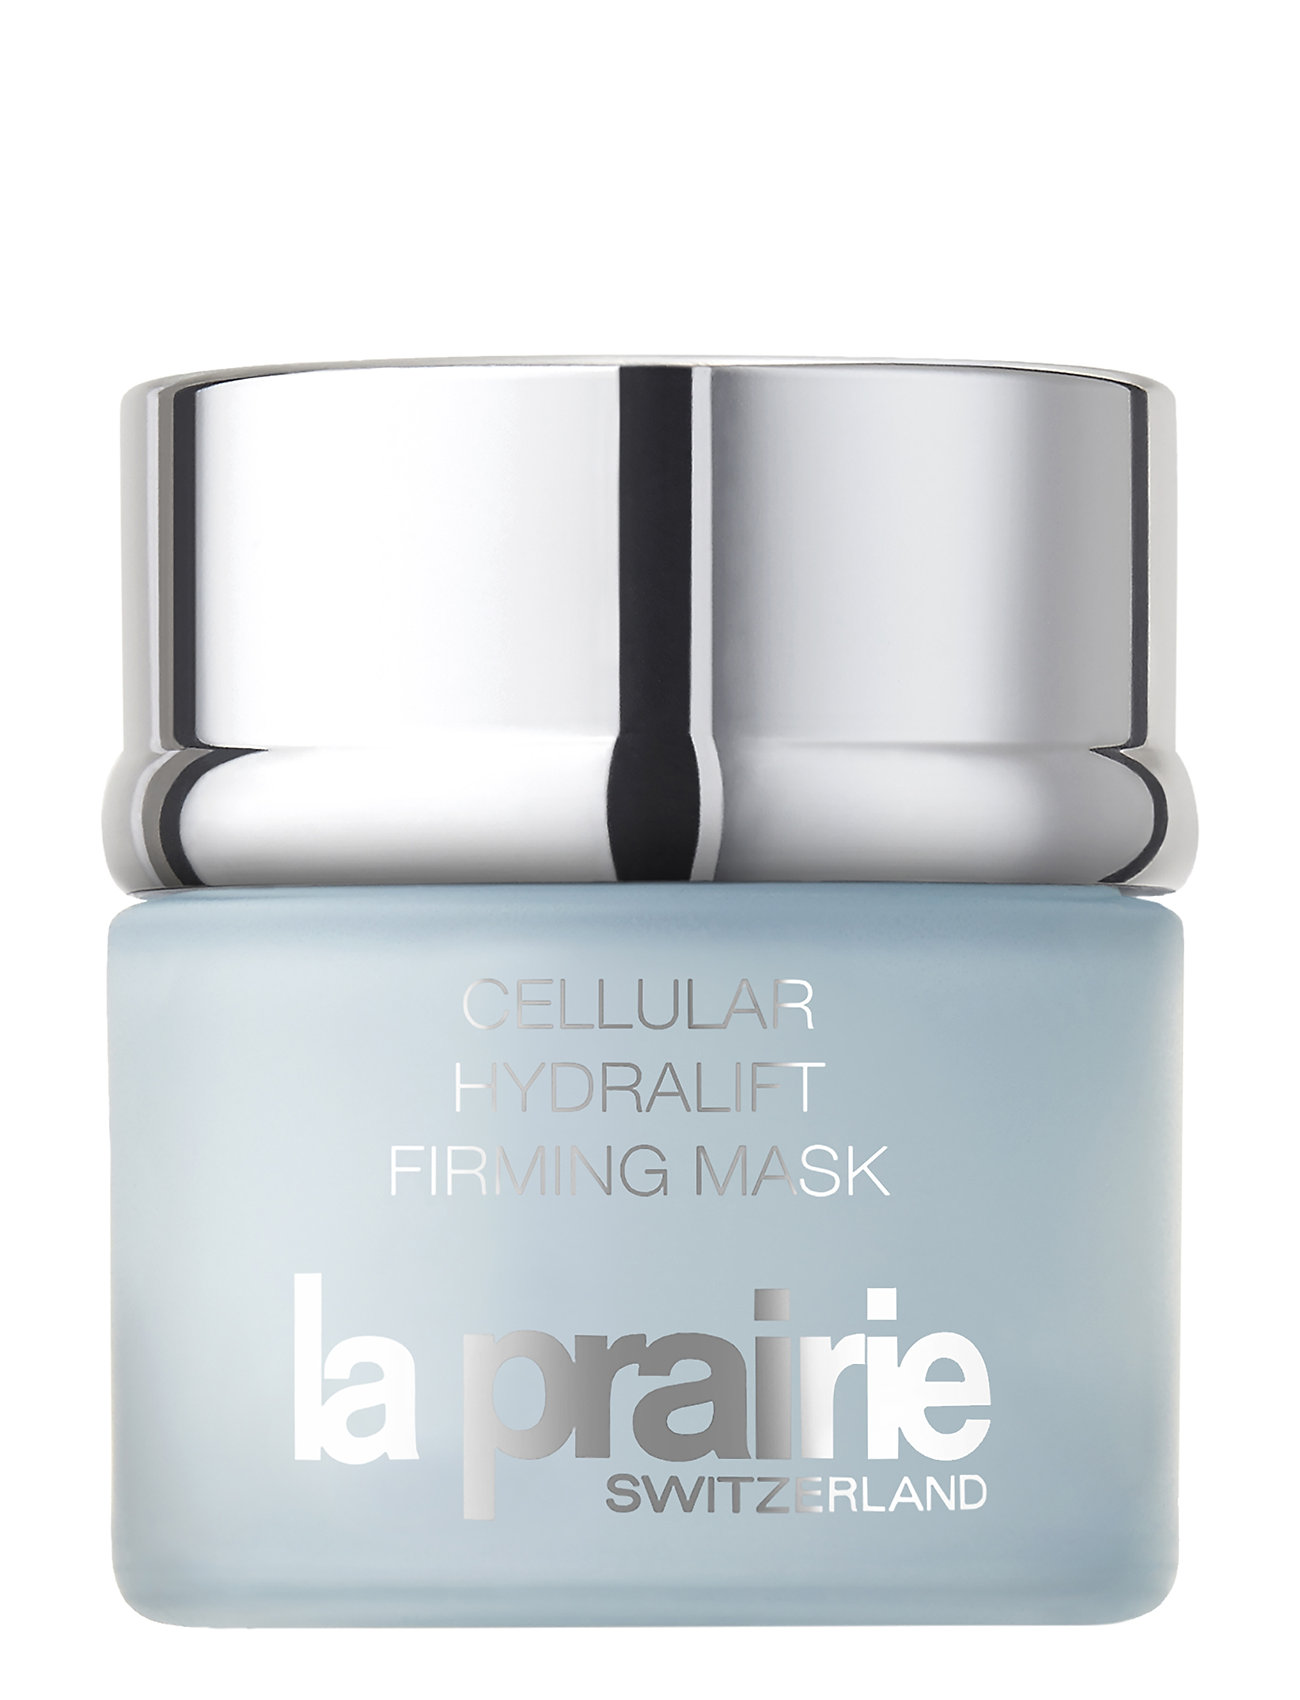 La Prairie MASKS AND EXFOLIATORS CELLULAR HYDRALIFT FIRMING MASK - NO COLOR